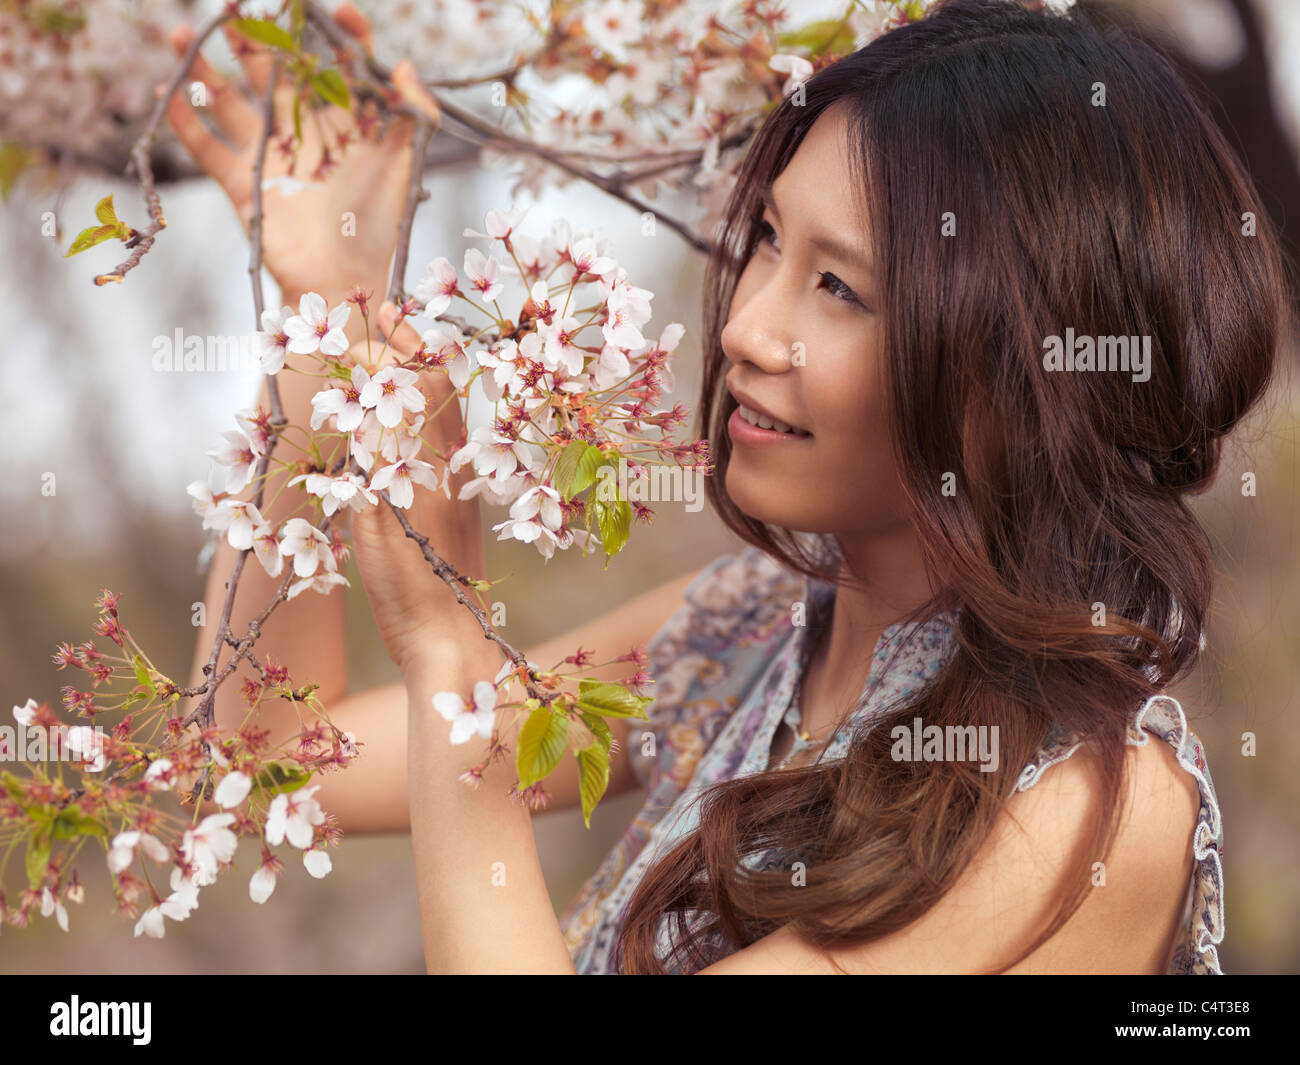 Portrait Of A Beautiful Young Smiling Asian Woman Standing